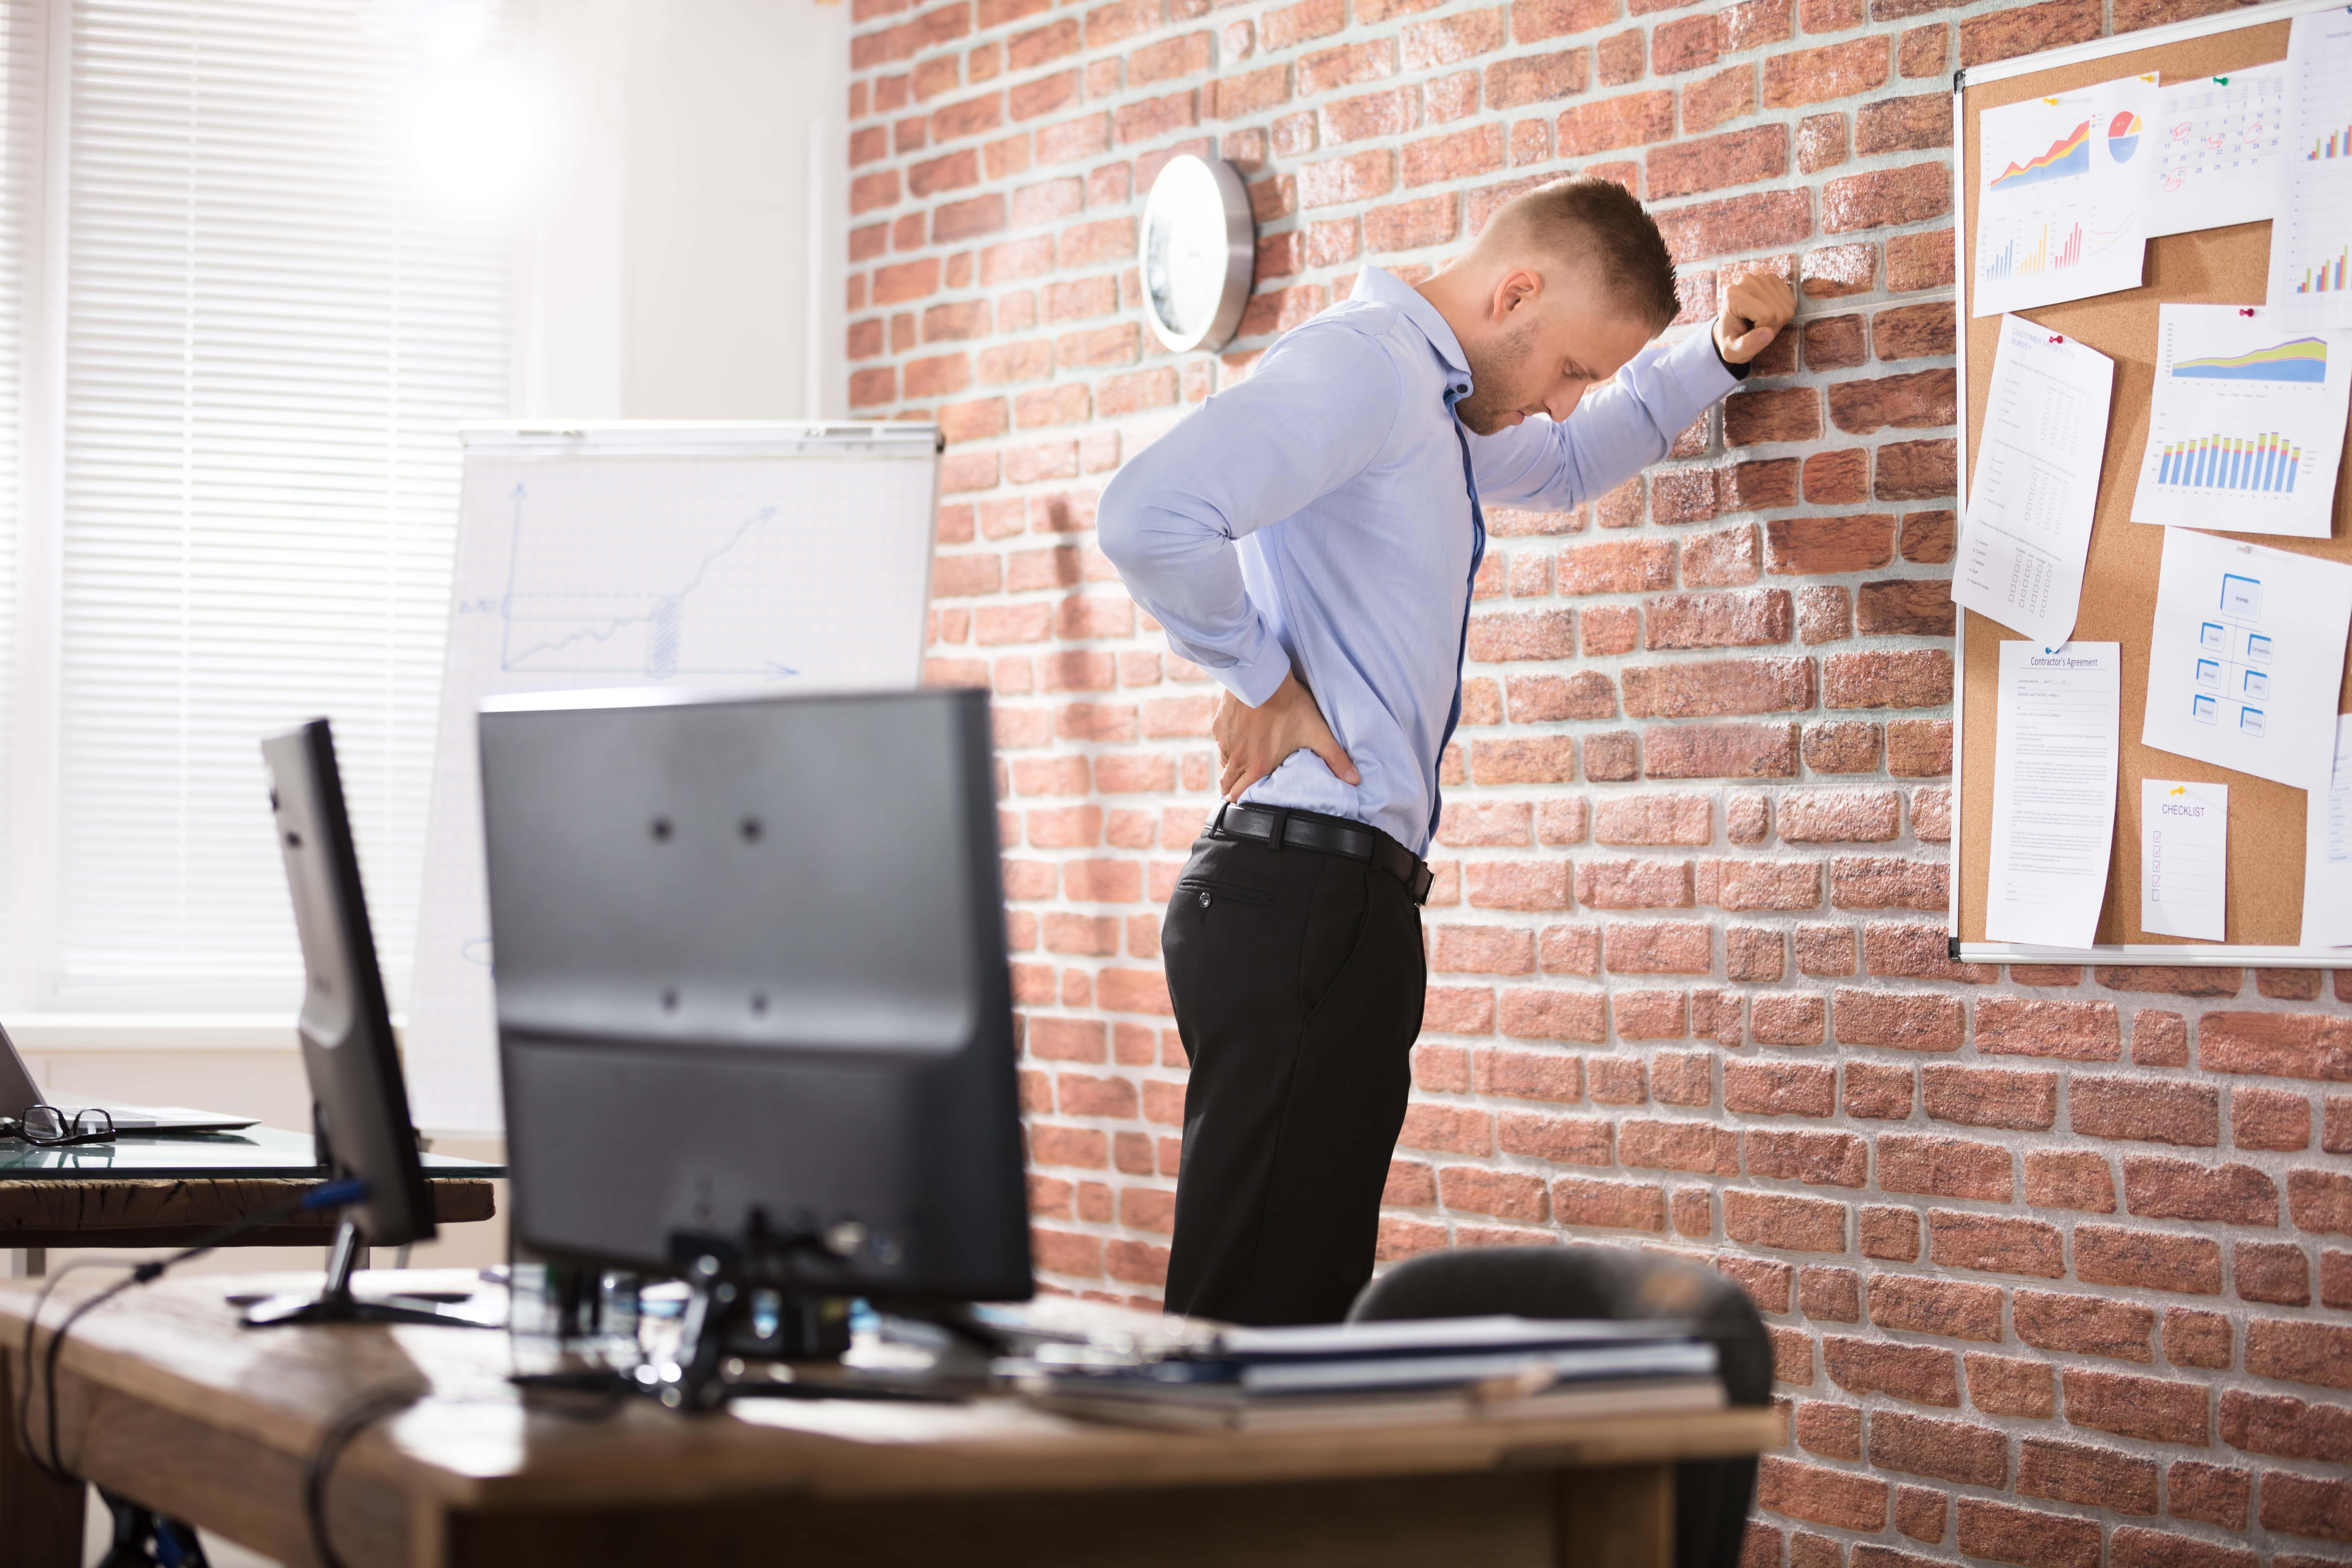 Businessman Leaning Against The Brick Wall Having Back Pain In Office